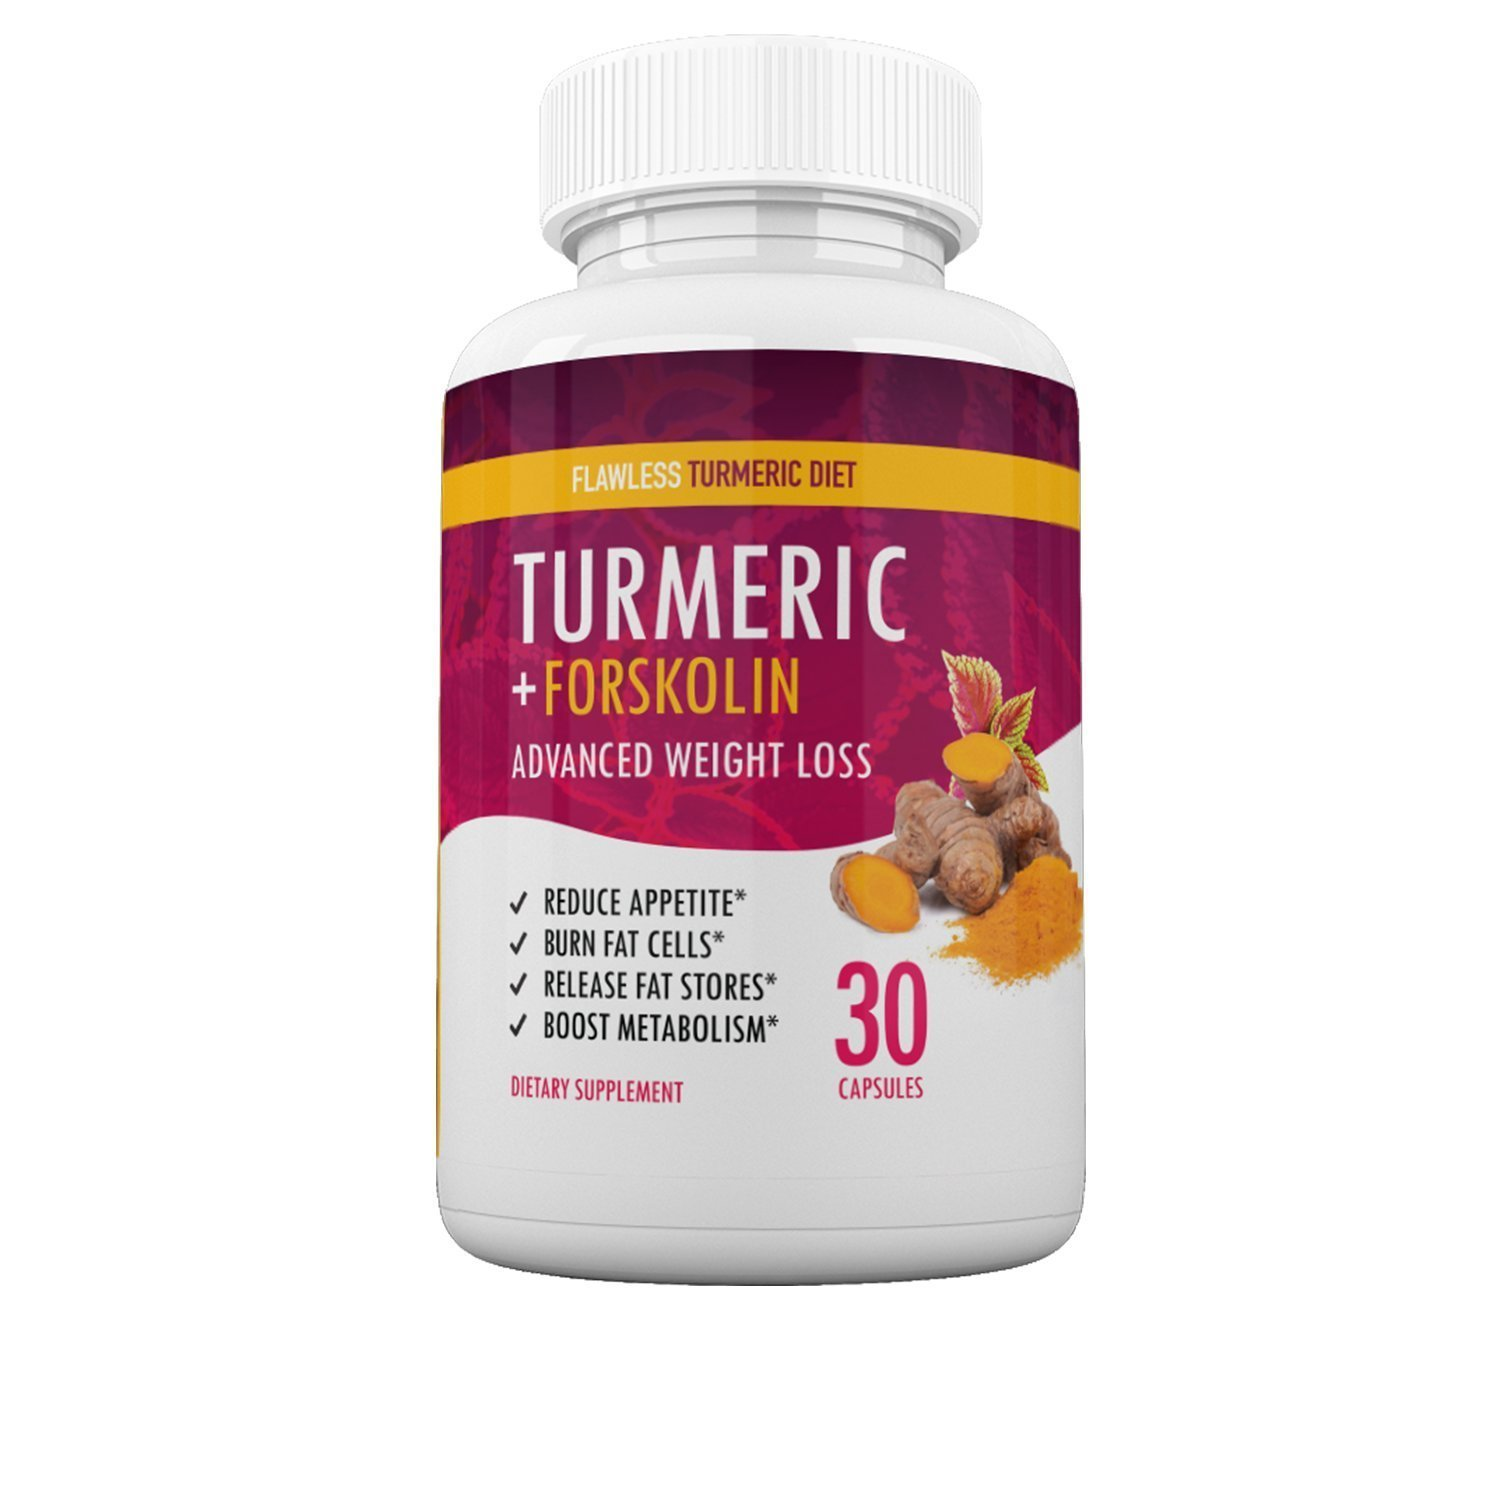 Flawless Turmeric Diet - Turmeric + Forskolin Advanced Weight Loss Formula - Suppress Appetite, Boost Metabolism, Burn Fat - 30 Day Supply